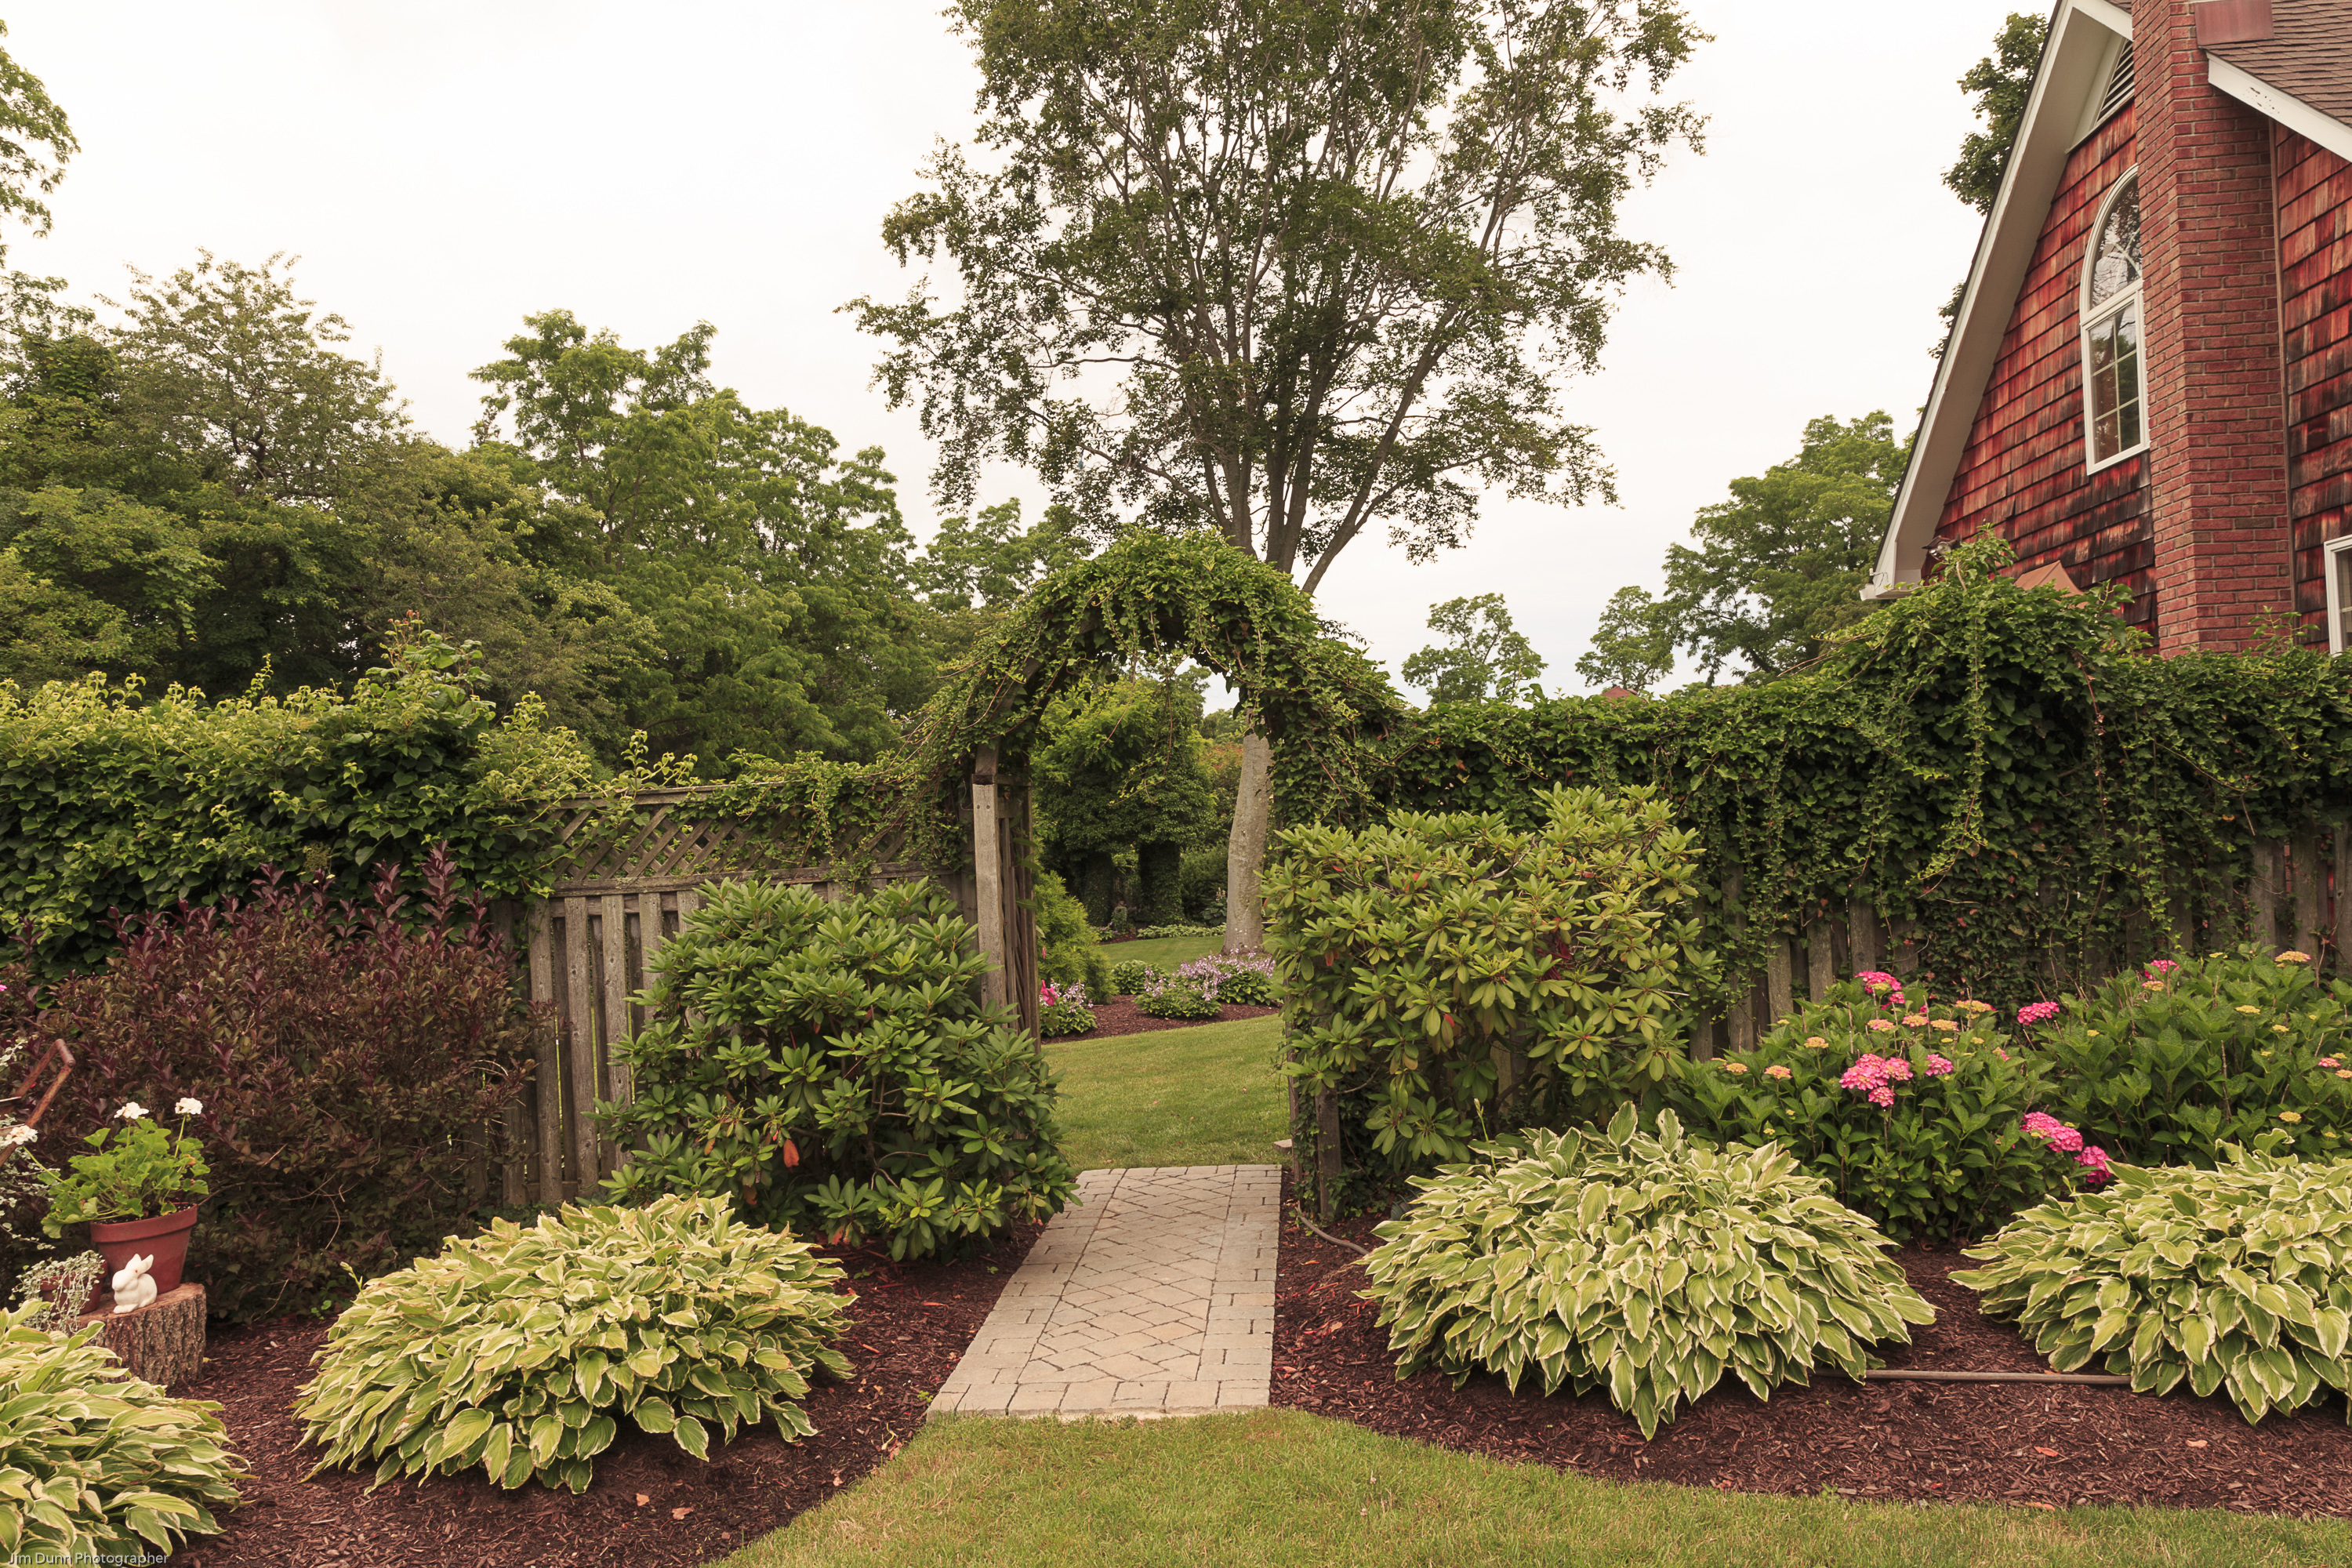 The Gardens & Landscapes of Port Jefferson